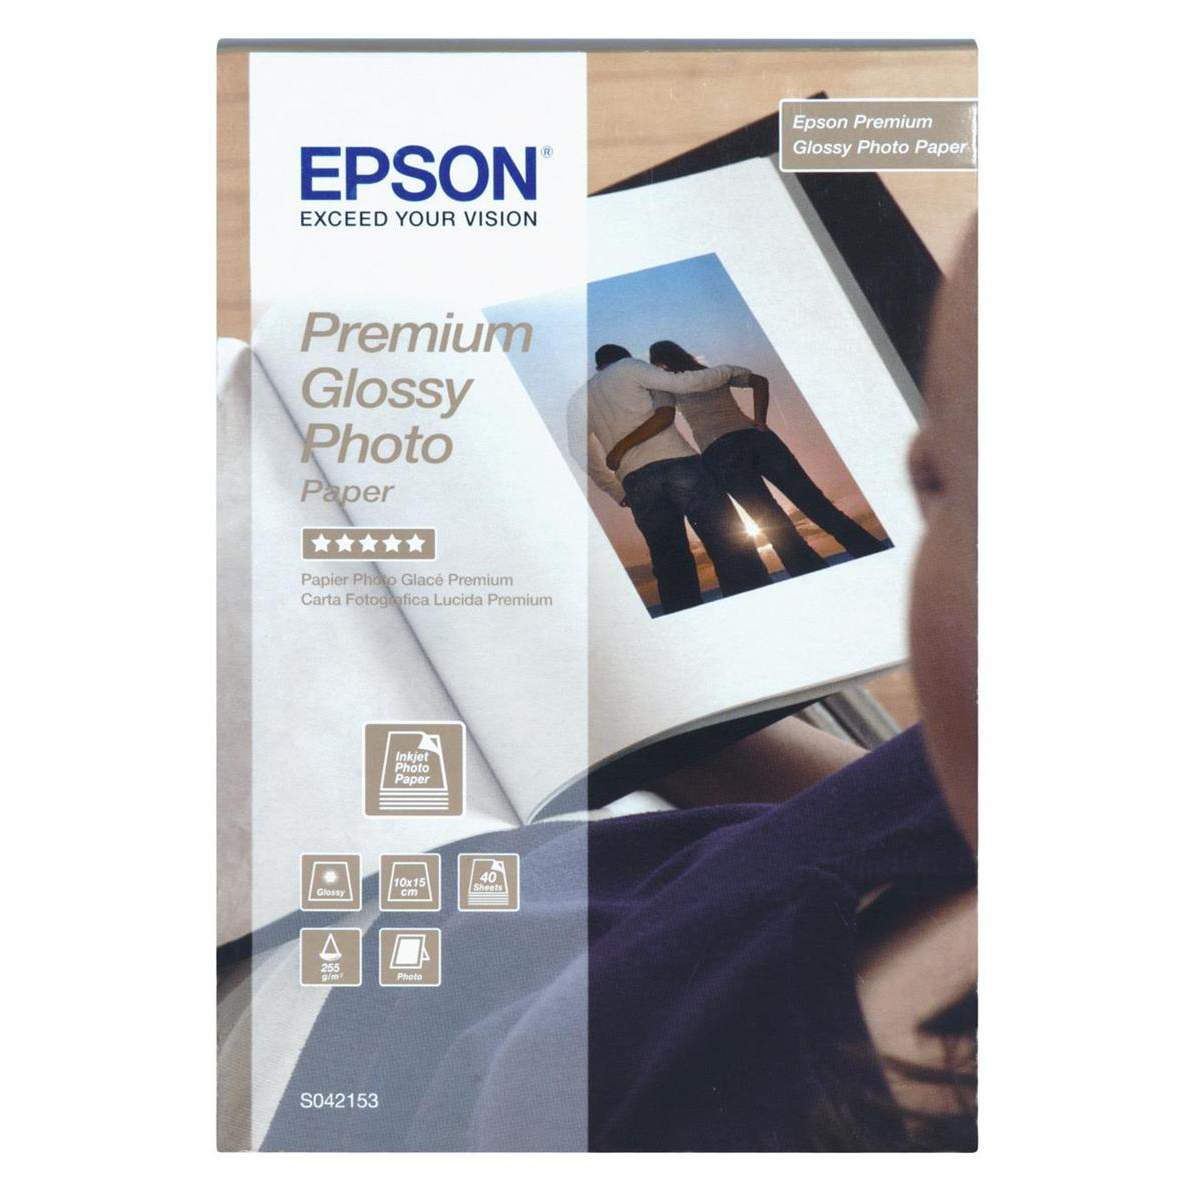 Photo Paper Epson Photo Paper Premium Glossy 255gsm 100x150mm Ref C13S042153 40 Sheets